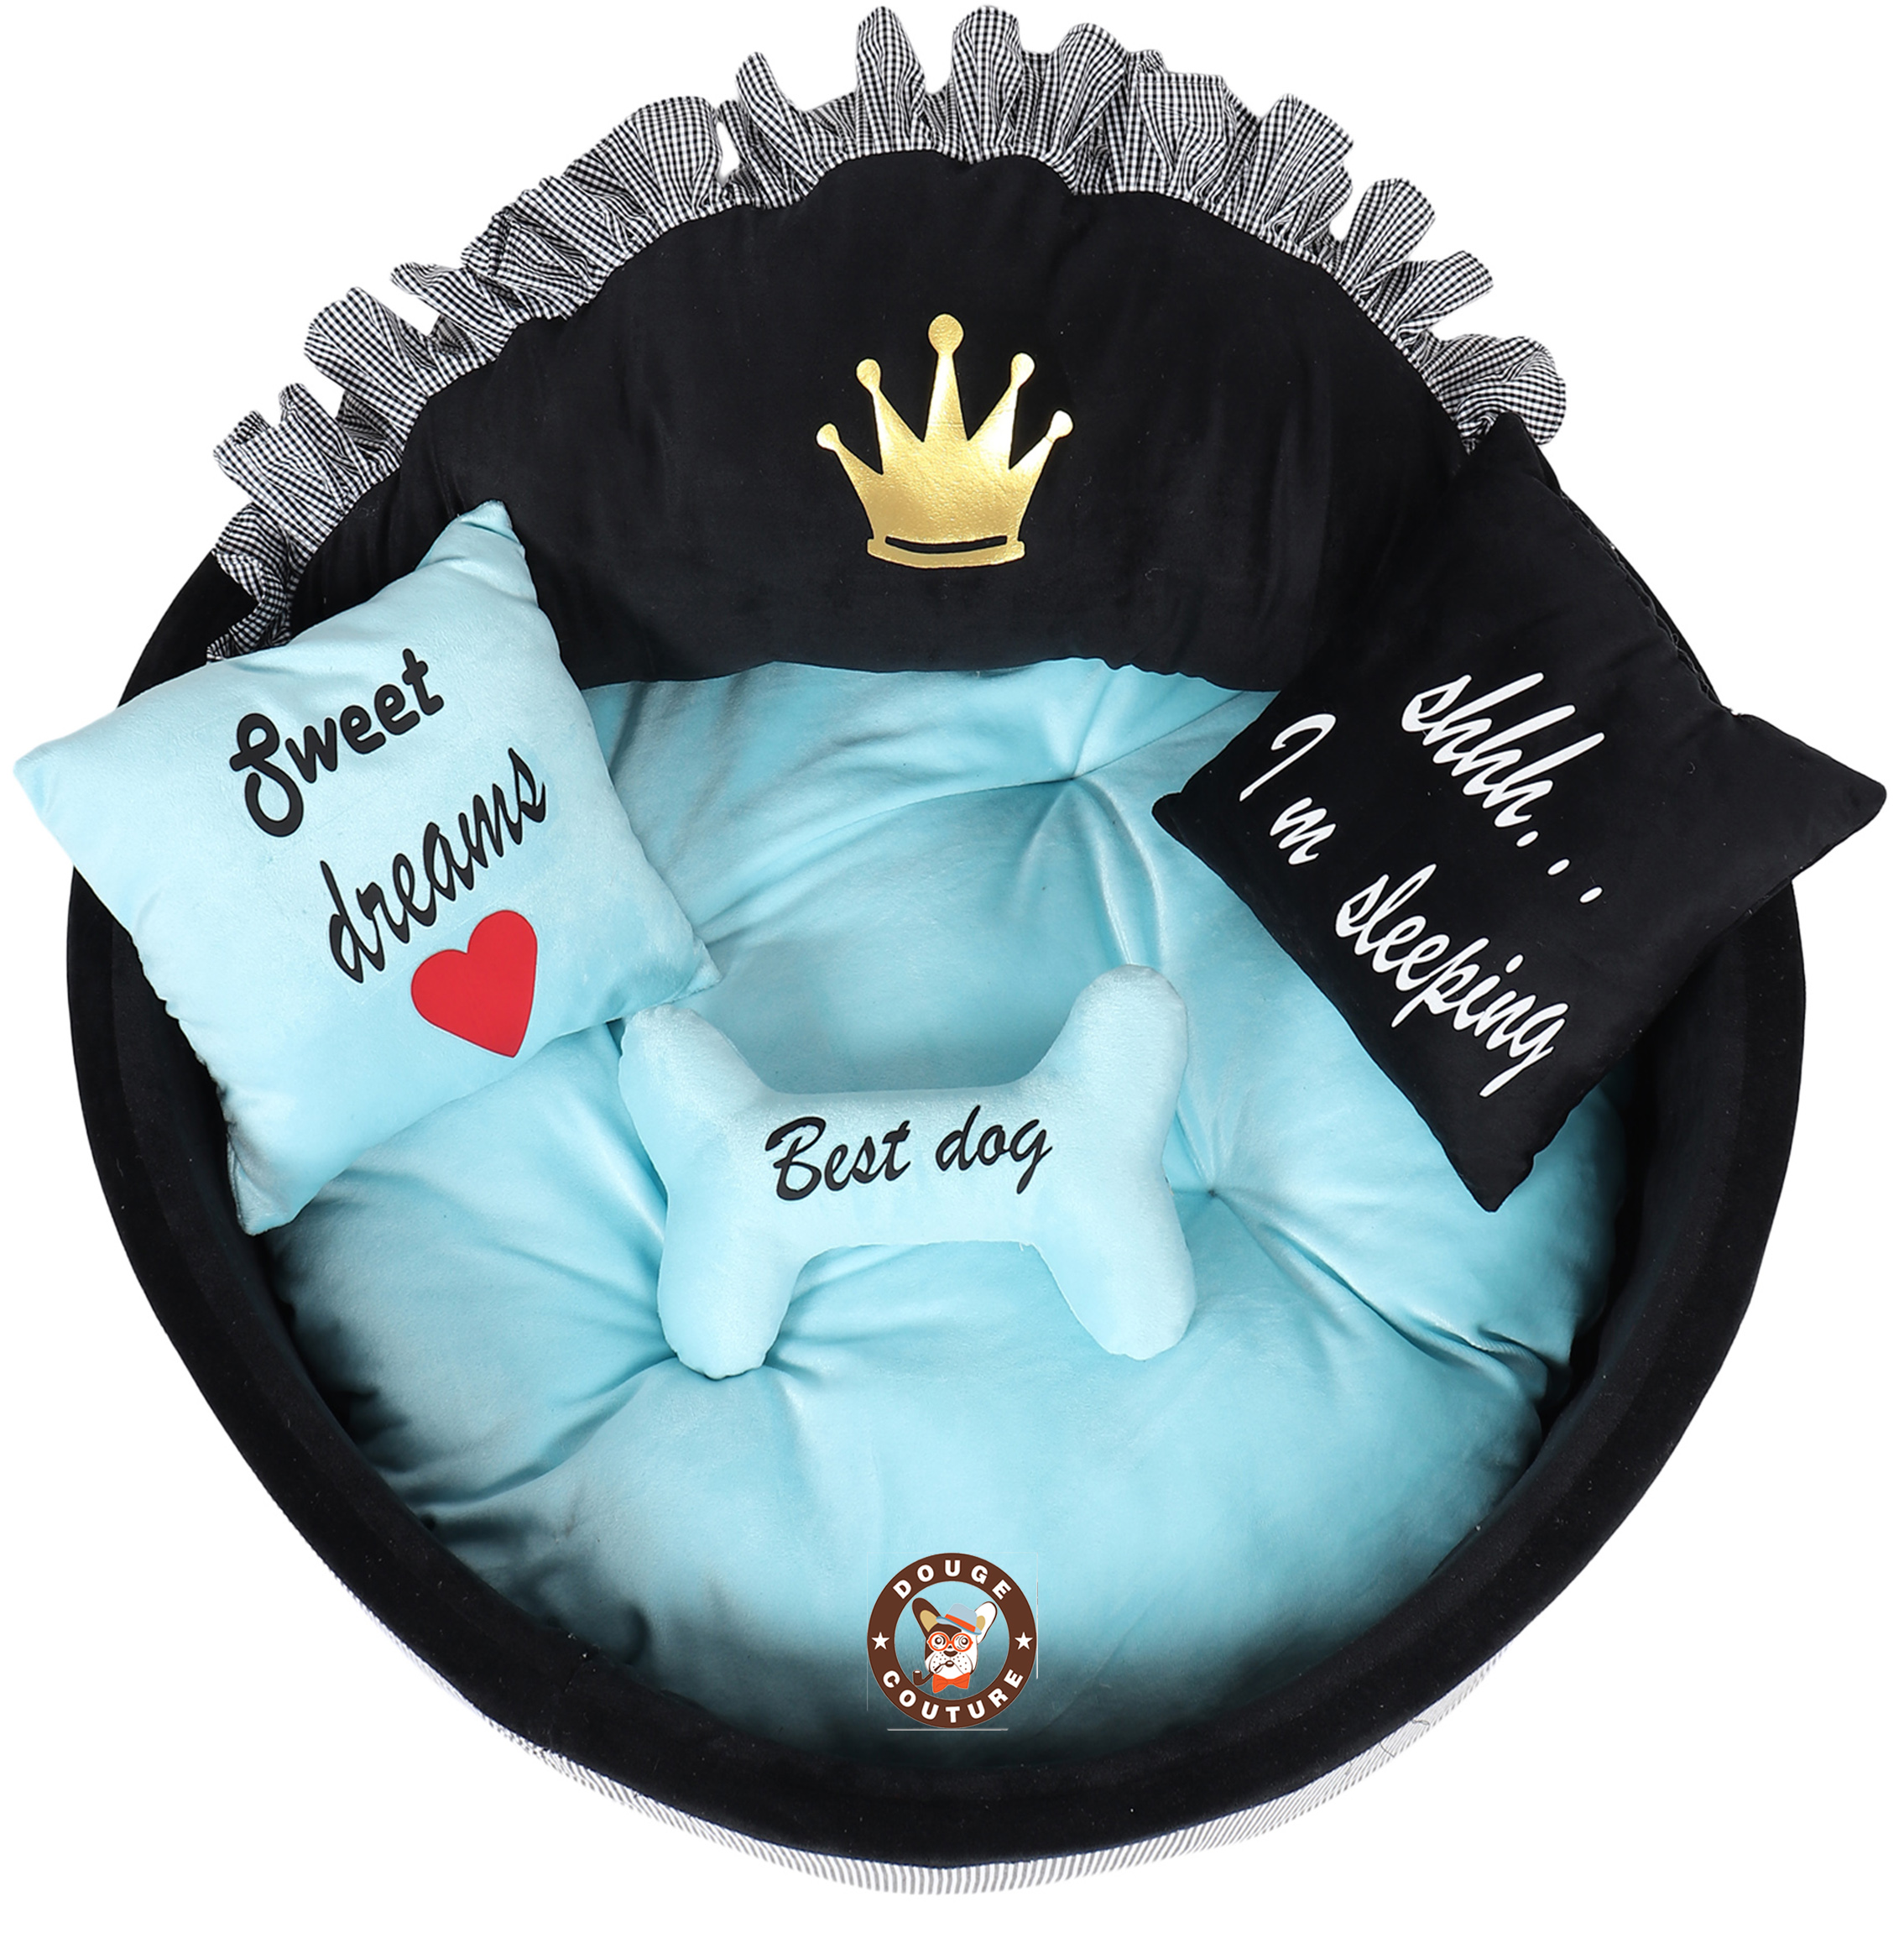 Douge Couture Black and sky blue prince dog bed Personalized dog bed Designer pet bed Cat bed Medium or small dog bed Black and blue dog bed Luxury bed